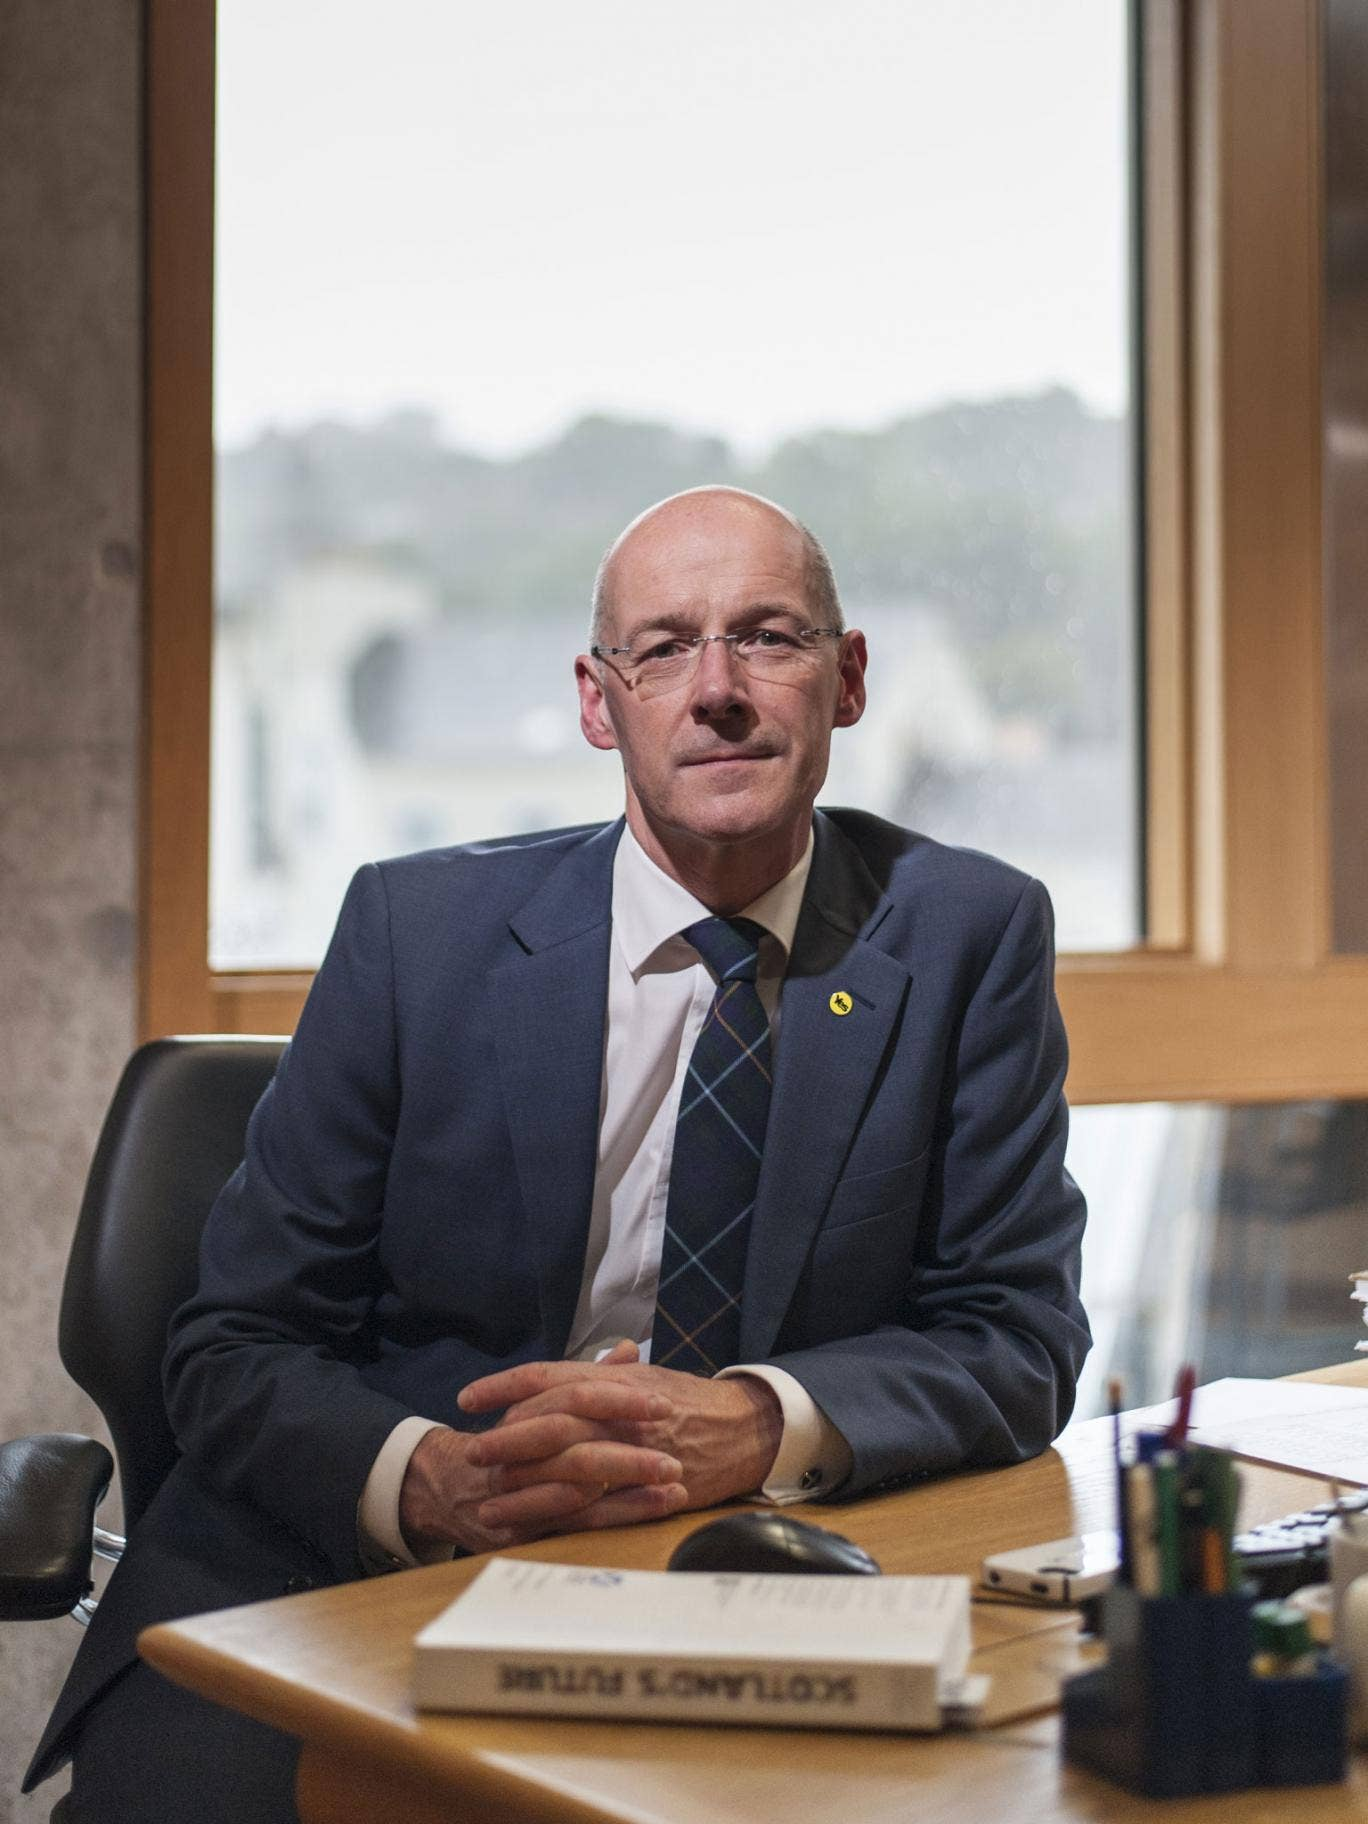 John Swinney, also Holyrood's finance secretary, repeated the tactics of Nicola Sturgeon's conference address on Saturday, when he both attacked Labour for supporting George Osborne's recent budget, and then offered a series of campaign initiatives that